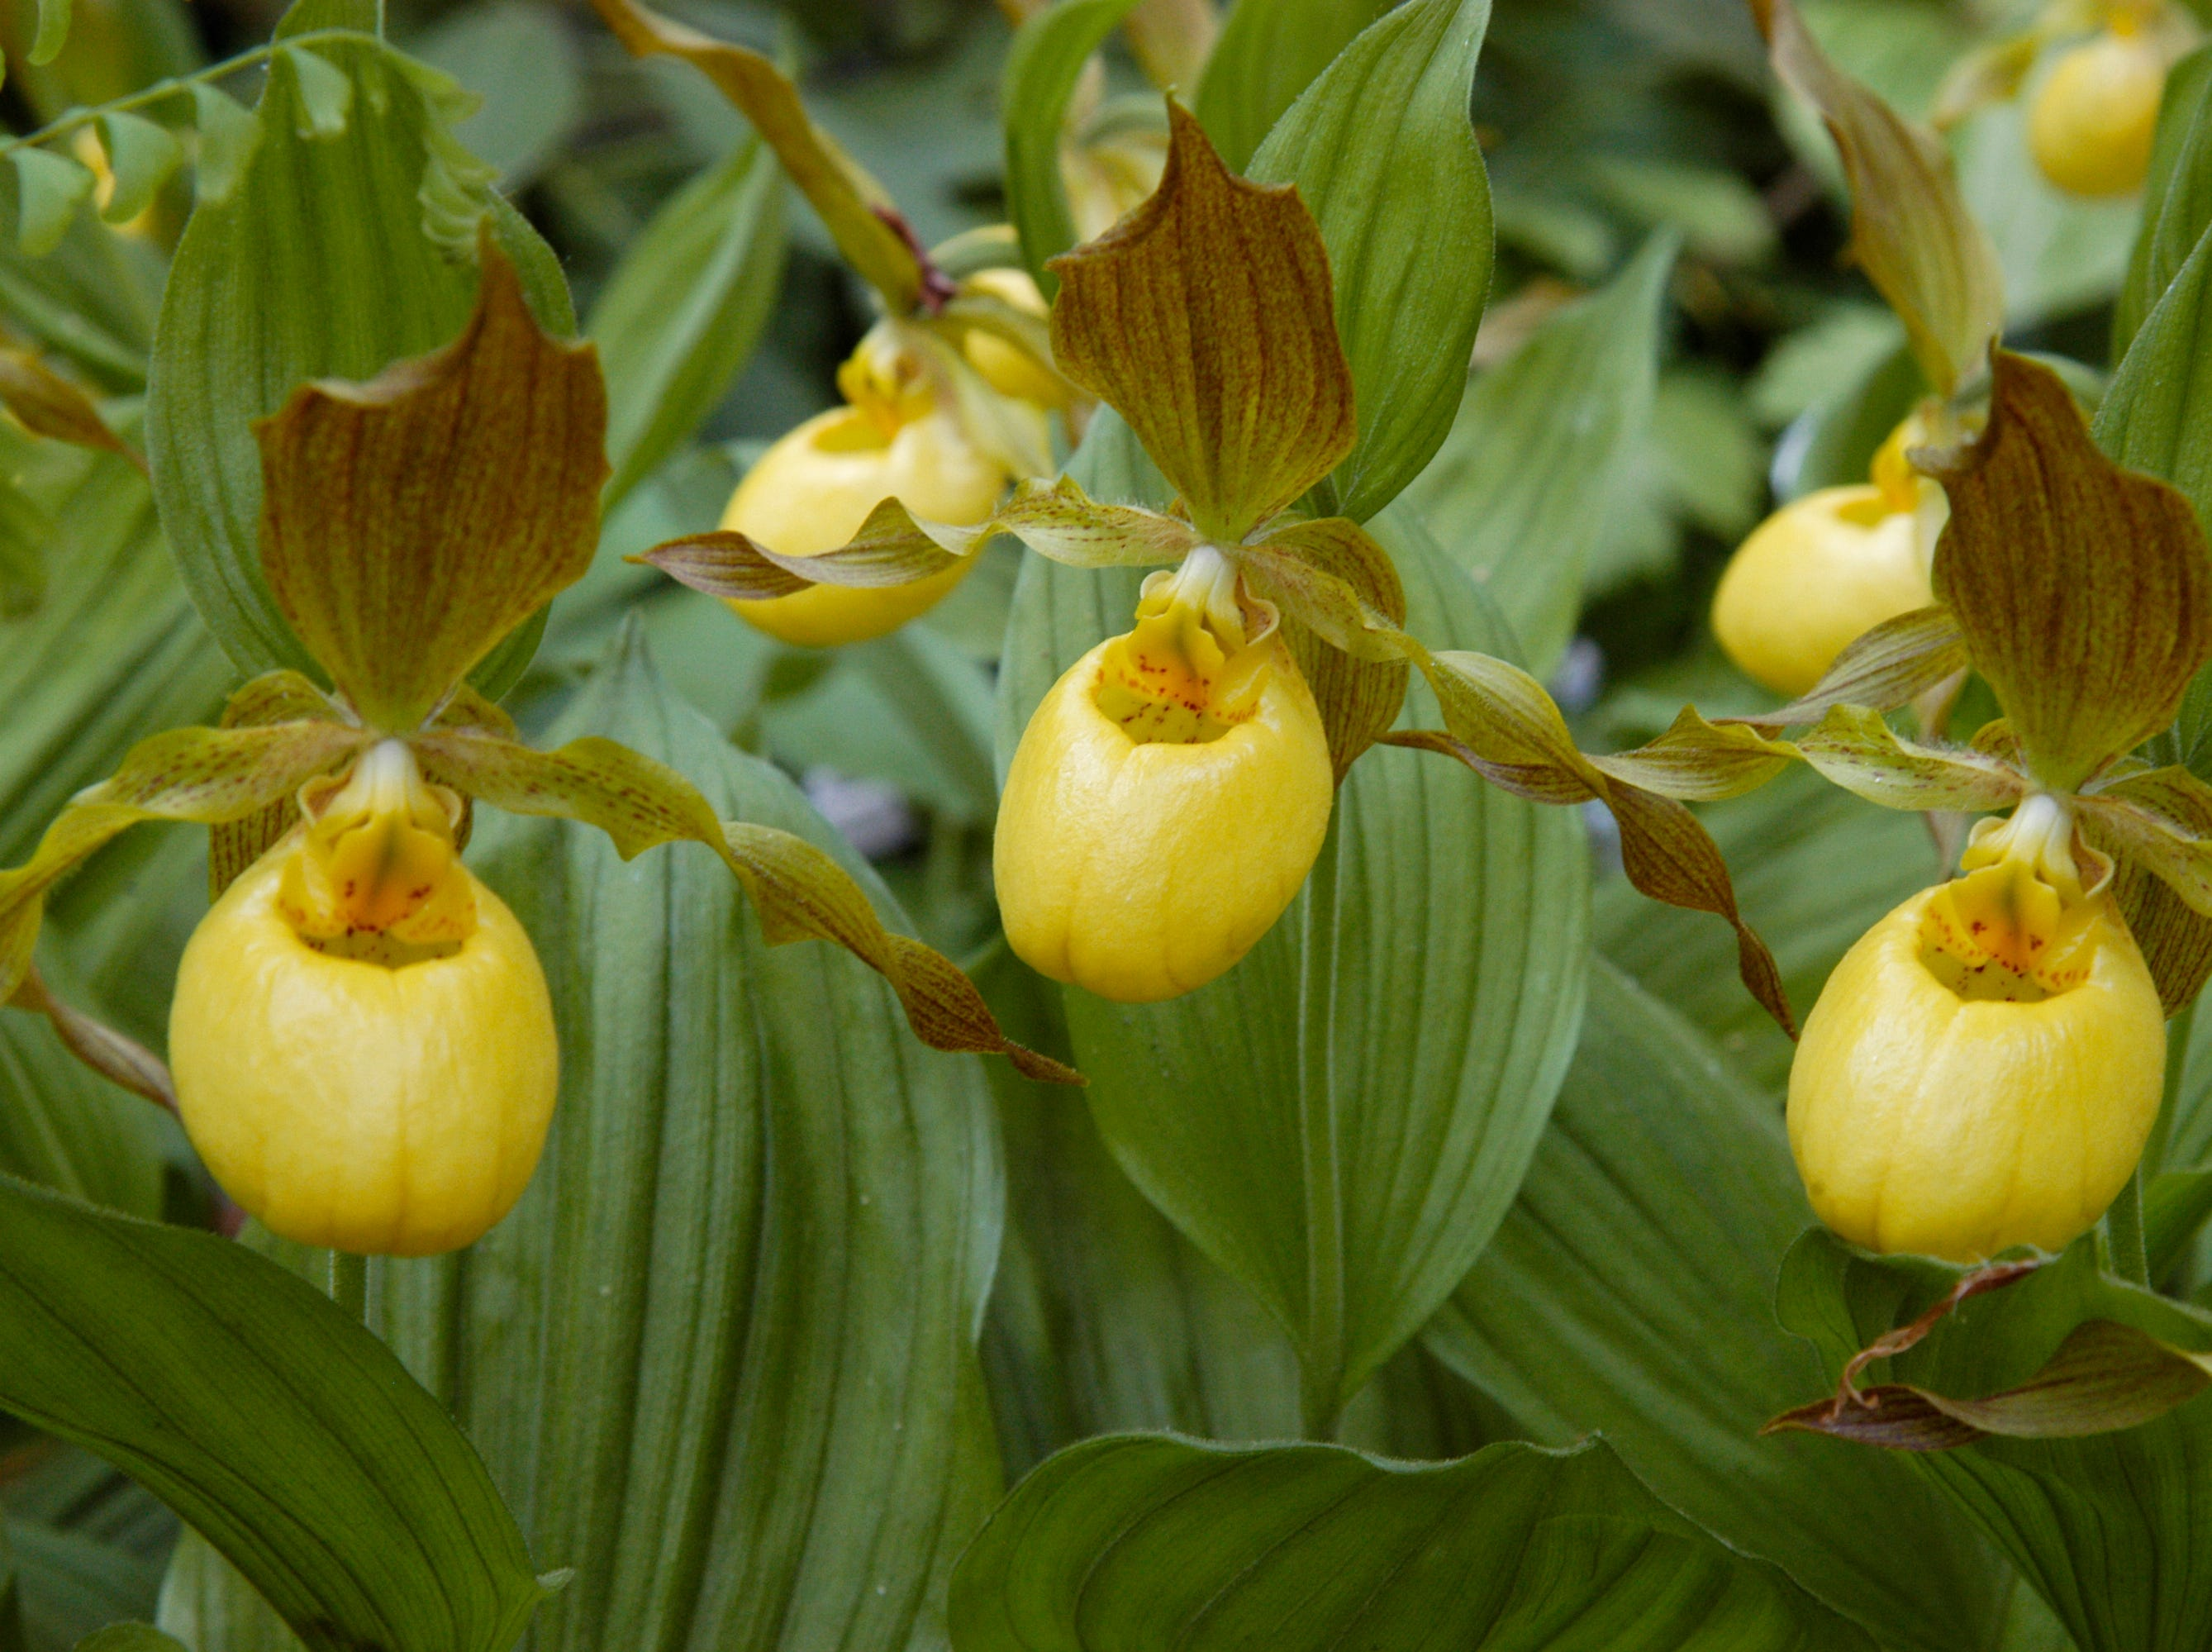 The Cypripedium parviflorum, or yellow lady's slipper orchid, is a rare species of orchid in Delaware.